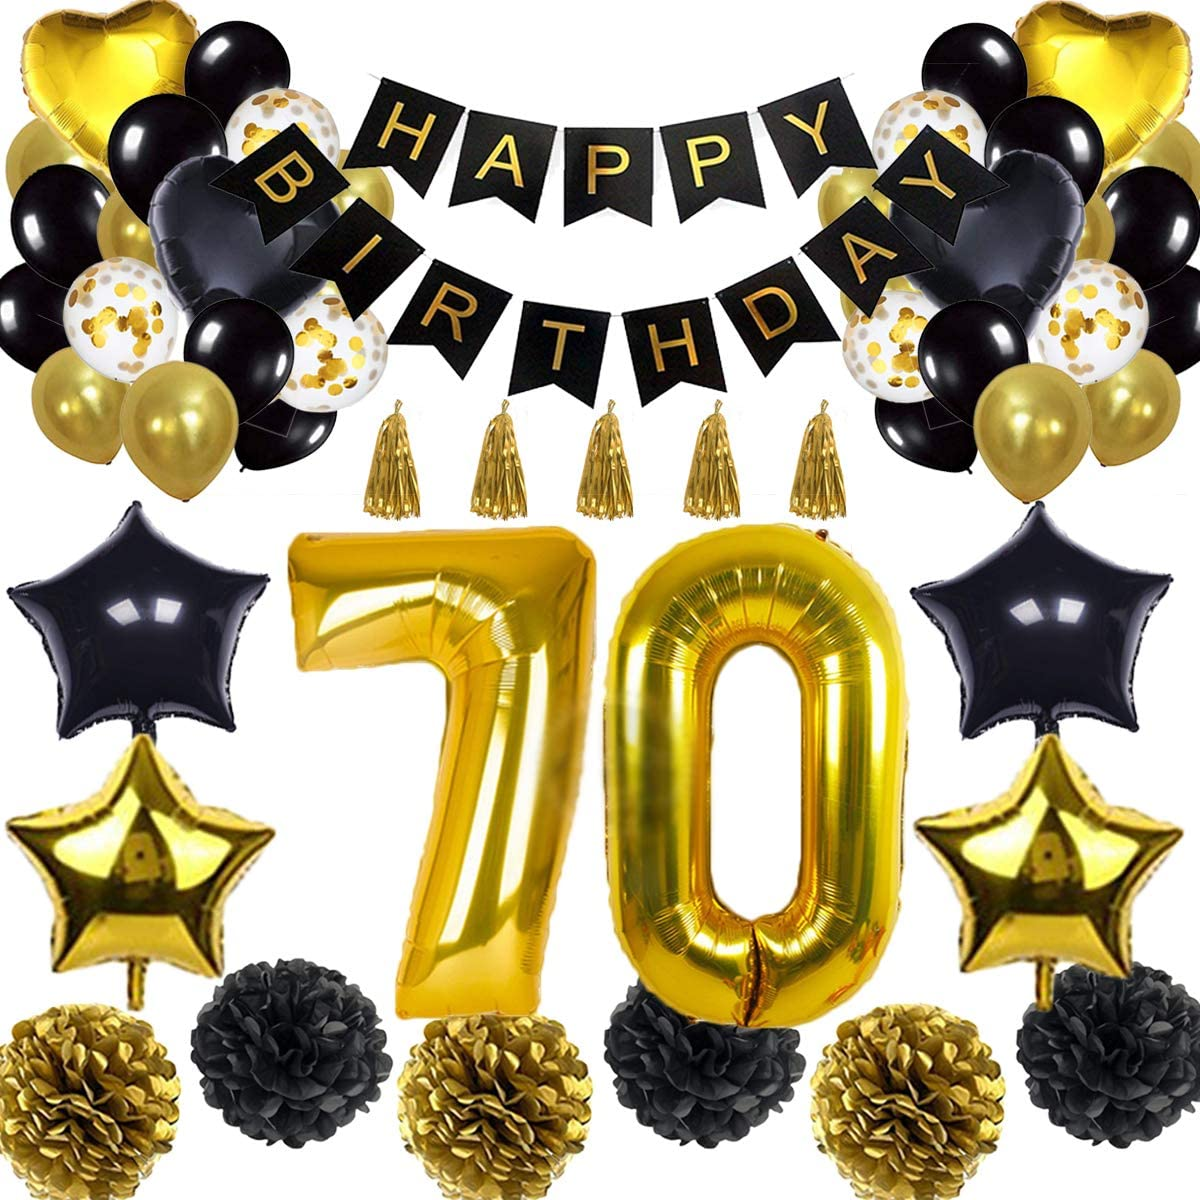 Bunting 70th Birthday Balloon Design Party Decoration Number Age Numeric